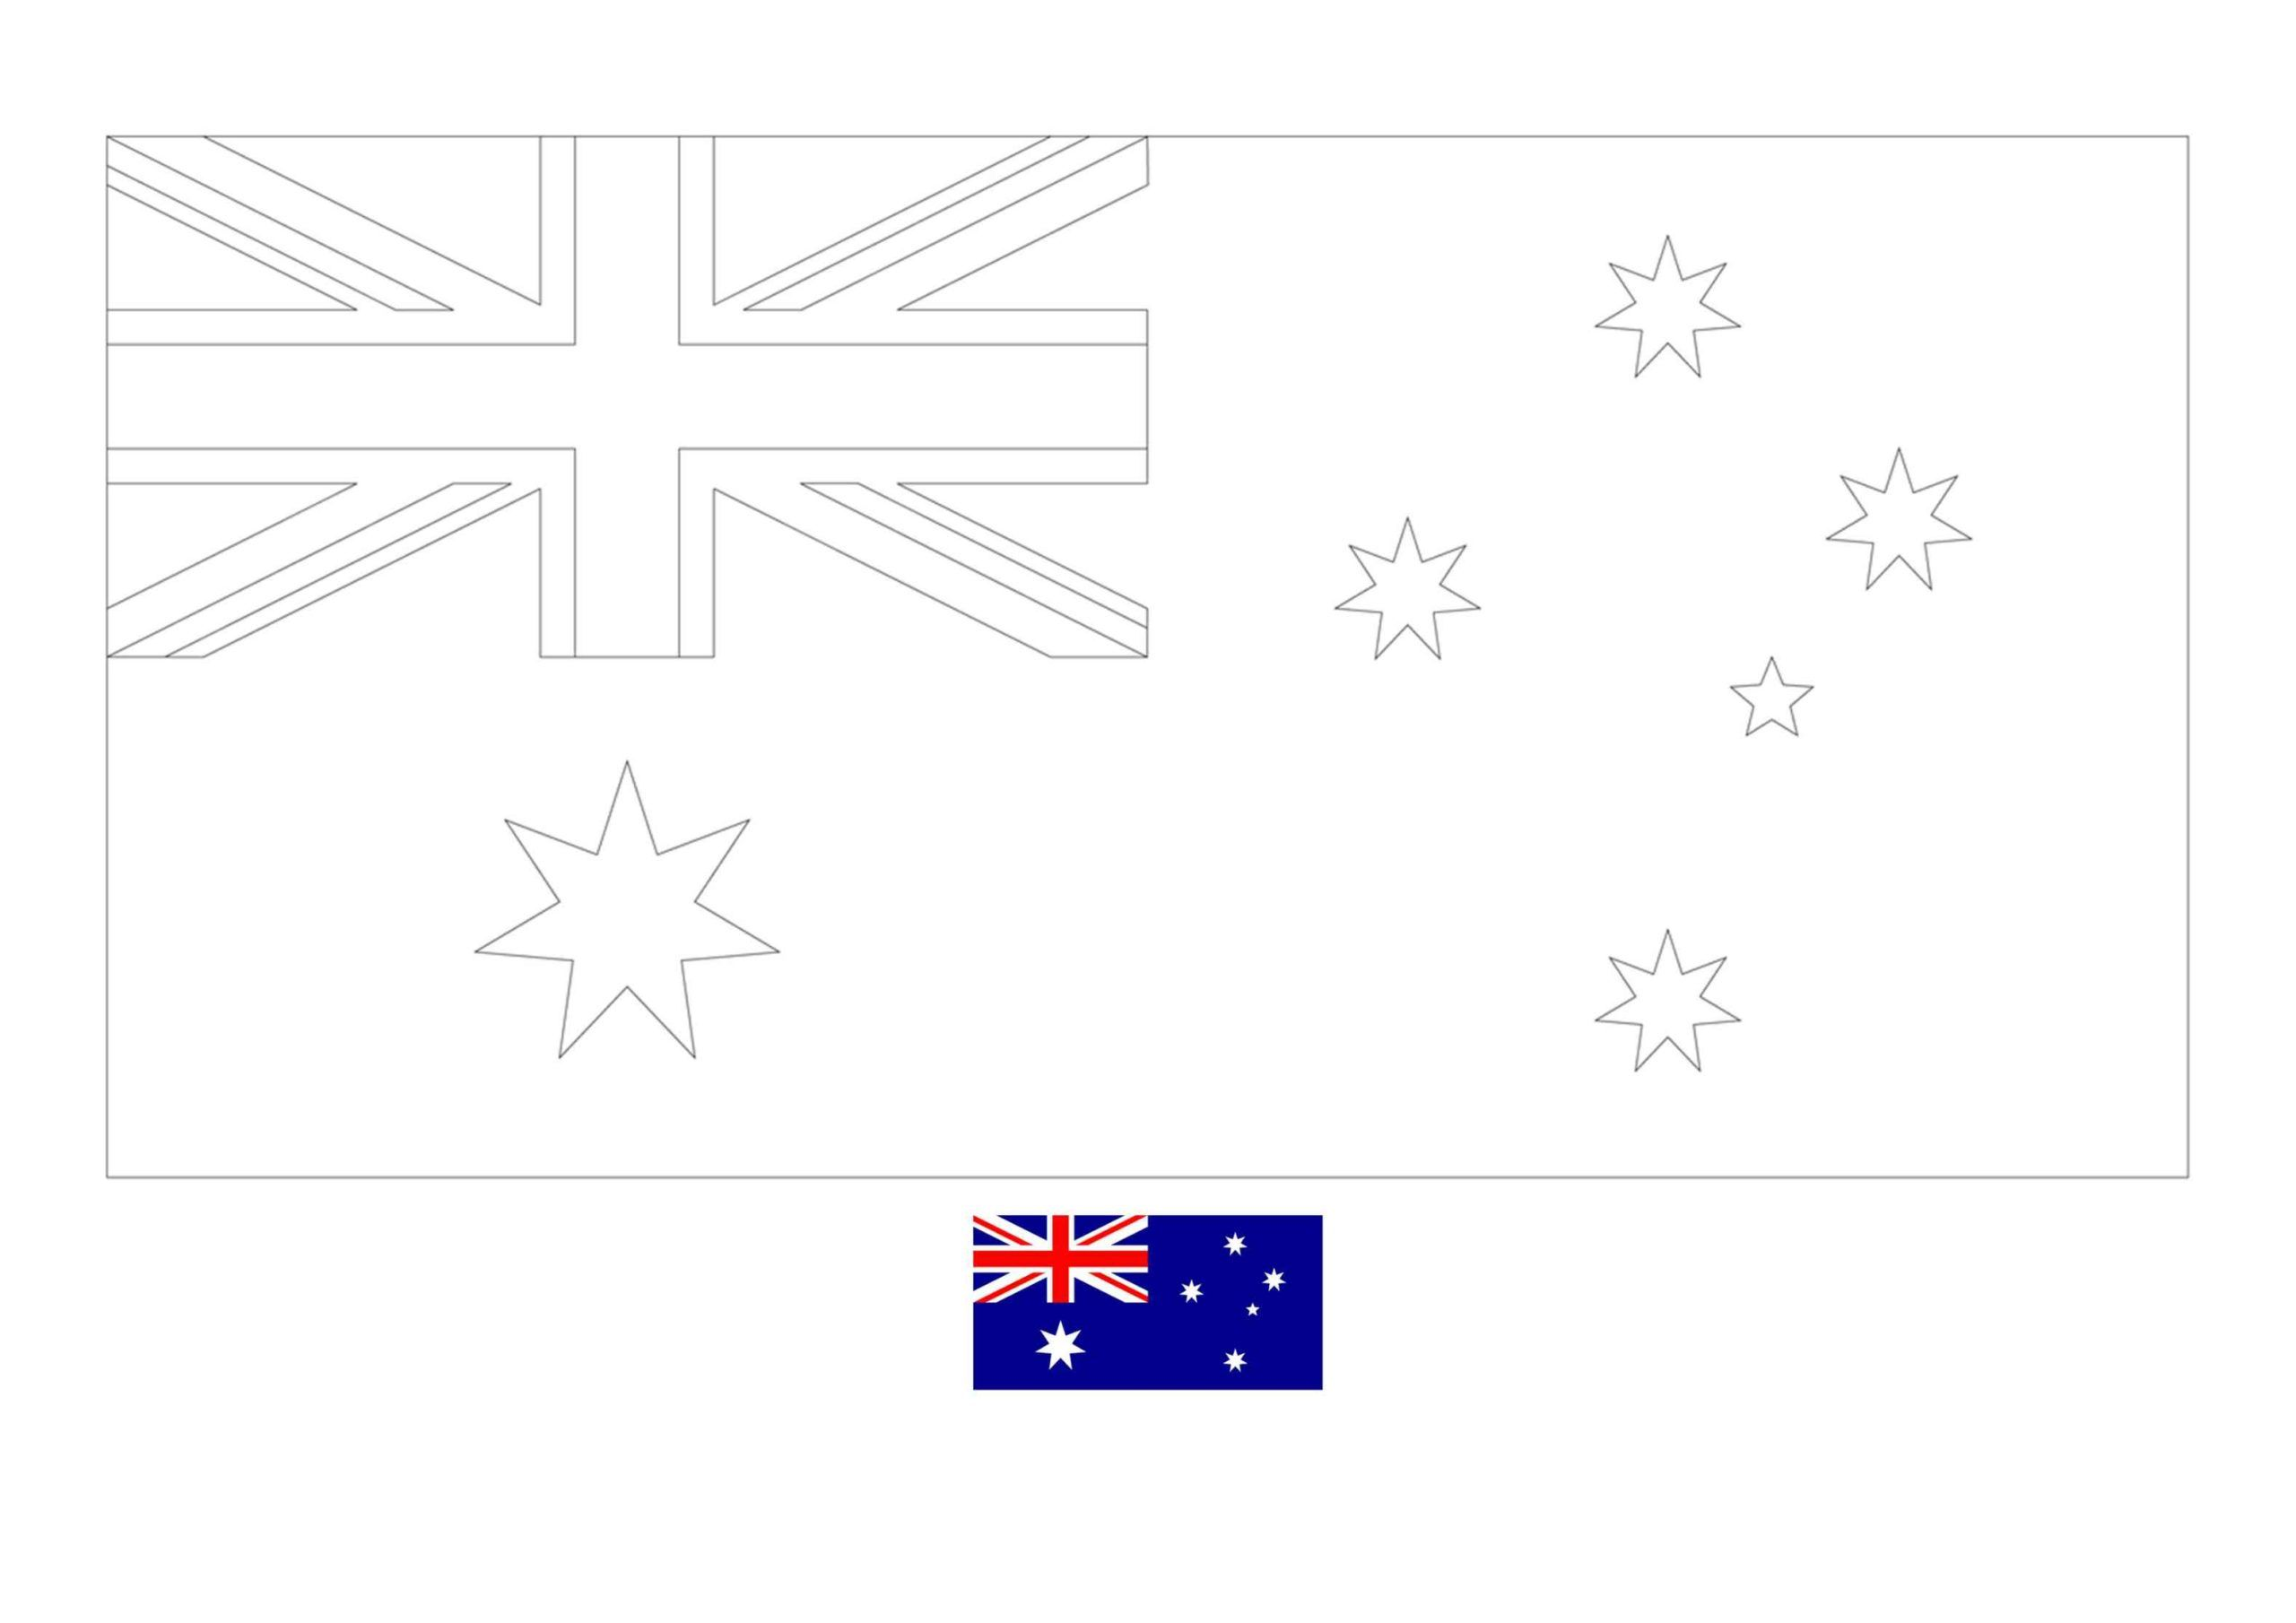 Flag Of Australia Coloring Page Free Coloring Sheets Coloring1 Com In 2020 Flag Coloring Pages Coloring Pages Free Coloring Sheets